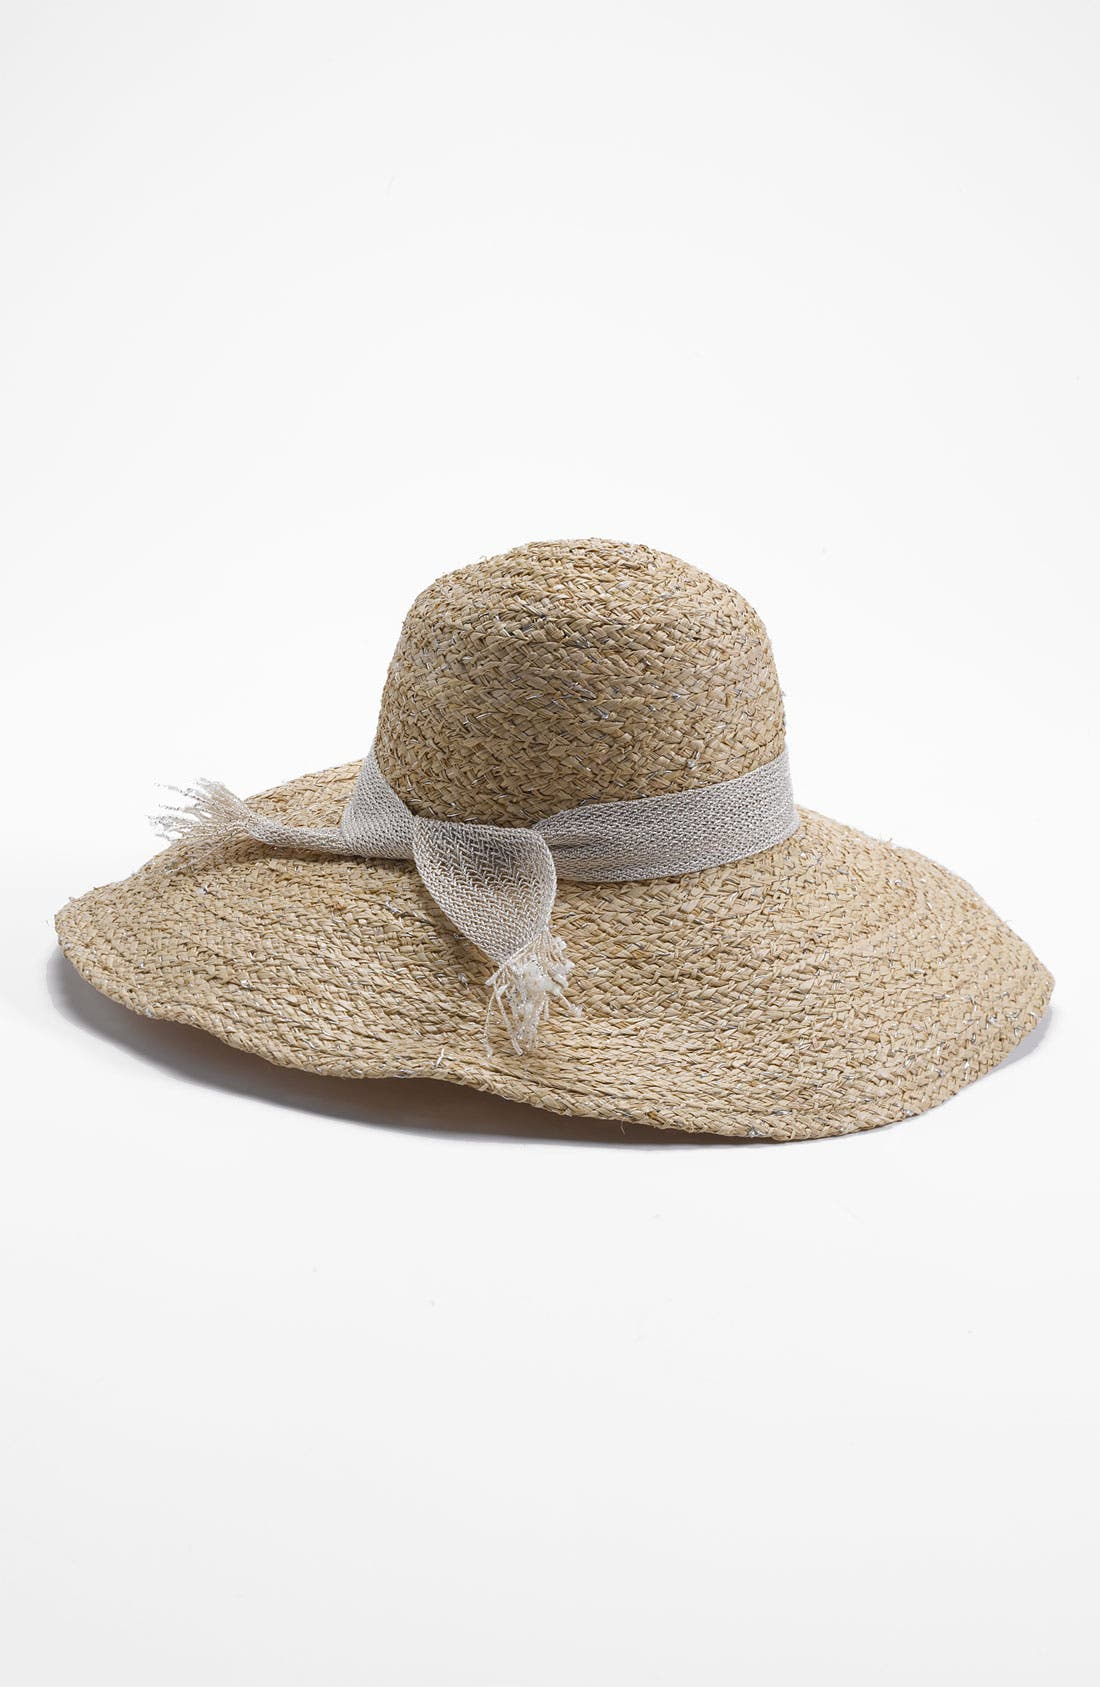 Main Image - Hat Attack Metallic Raffia Sun Hat